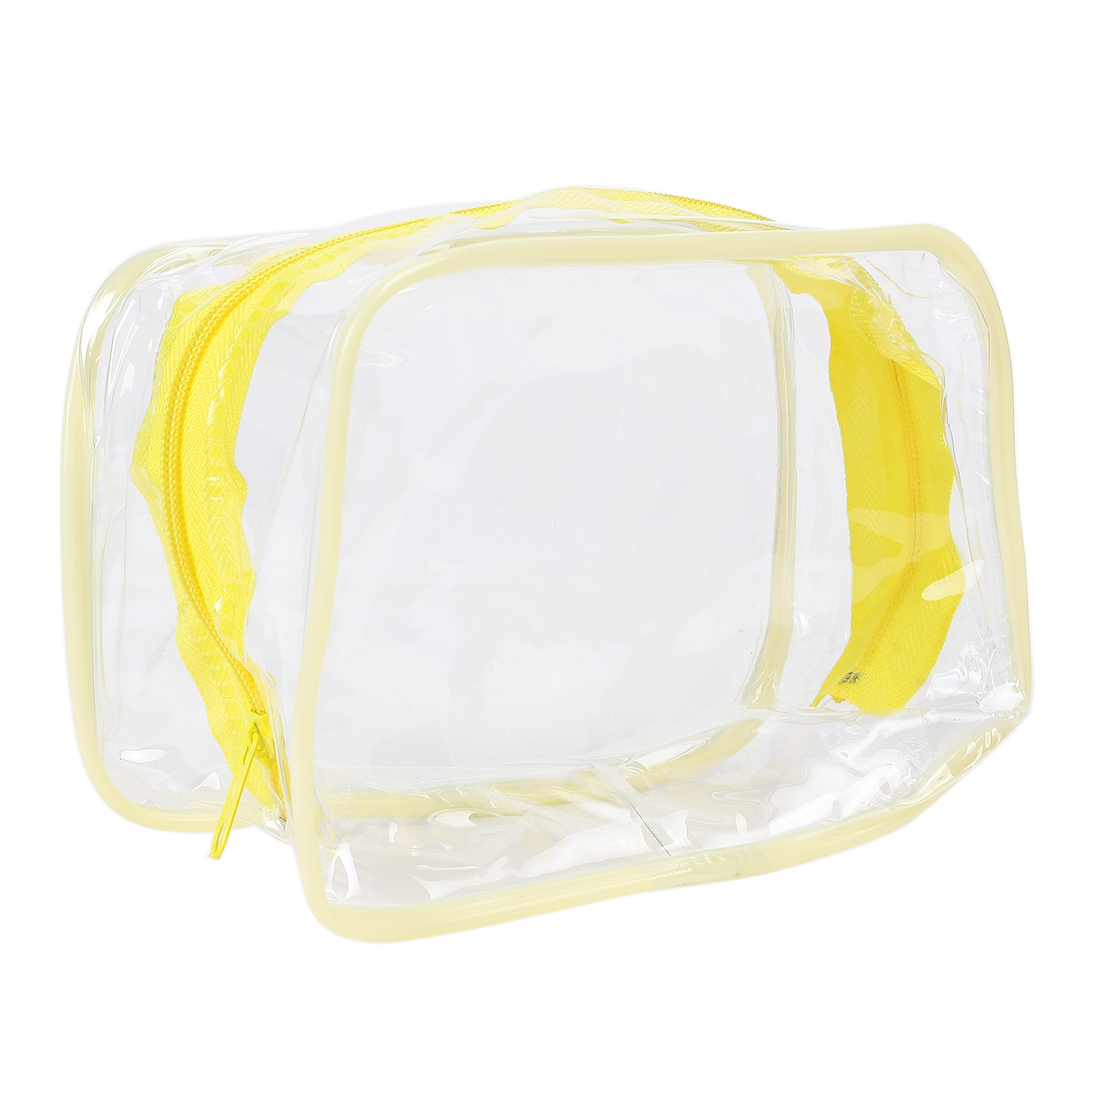 Cosmetic Makeup Toiletry Clear Pvc Travel Bath Wash Bag